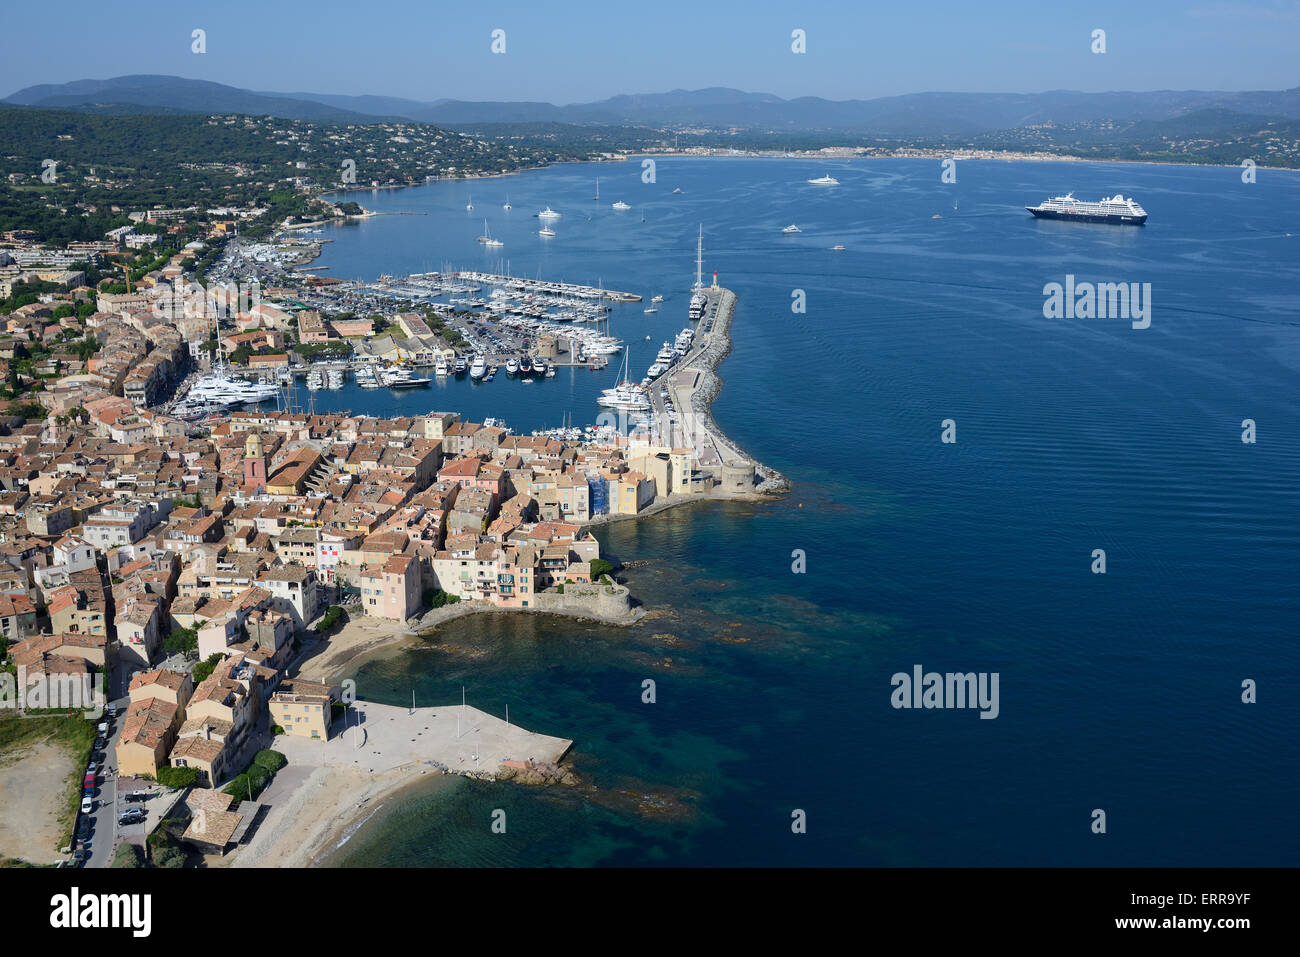 SEASIDE RESORT and FISHERMEN VILLAGE (aerial view). Saint-Tropez and its Gulf, Var, French Riviera, France. - Stock Image